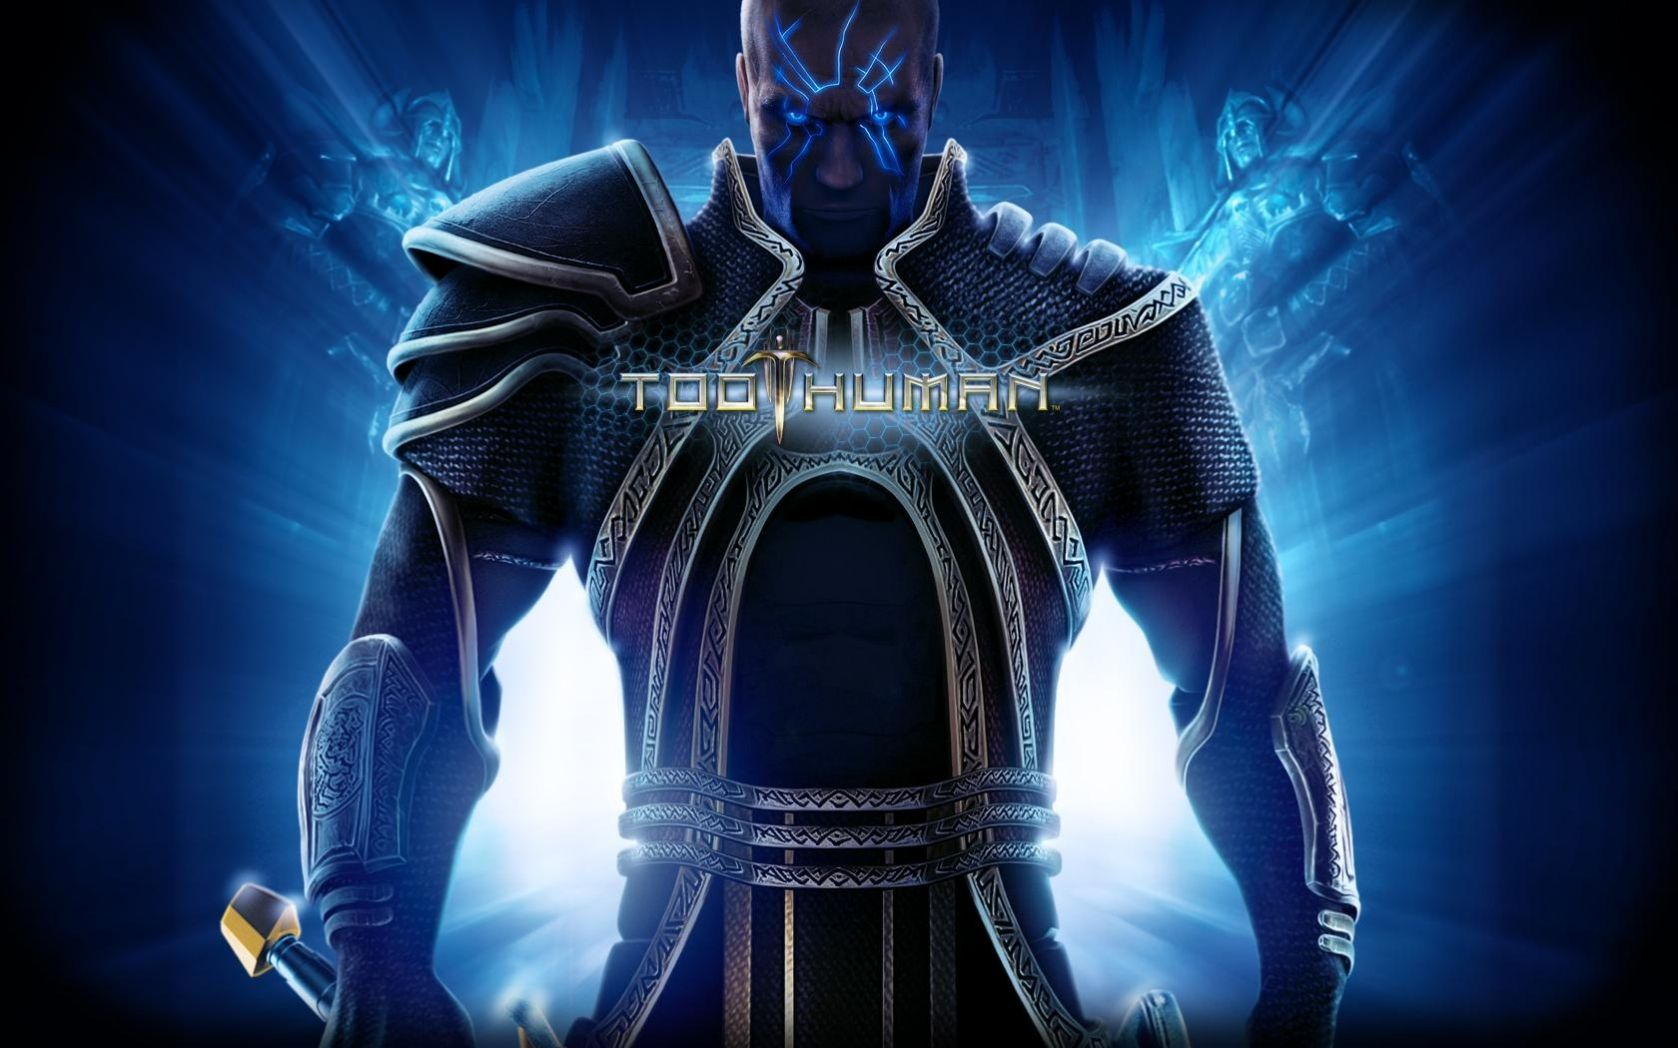 Too Human Game new HD Wallpaper Latest games, Cool gifs